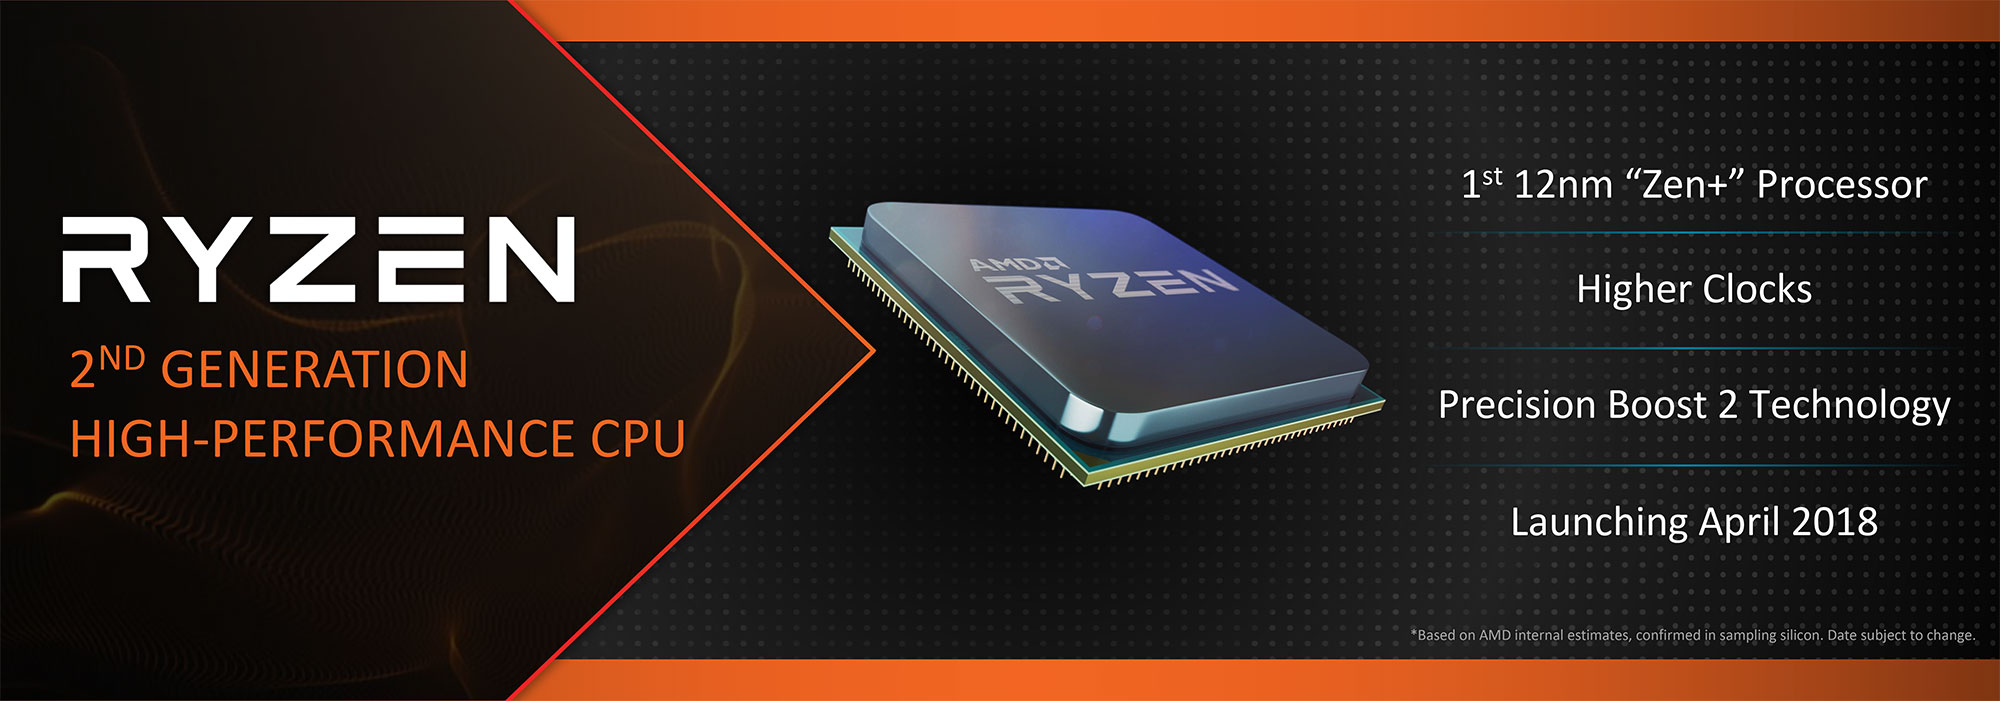 AMD-2nd-Generation-Ryzen-Processors